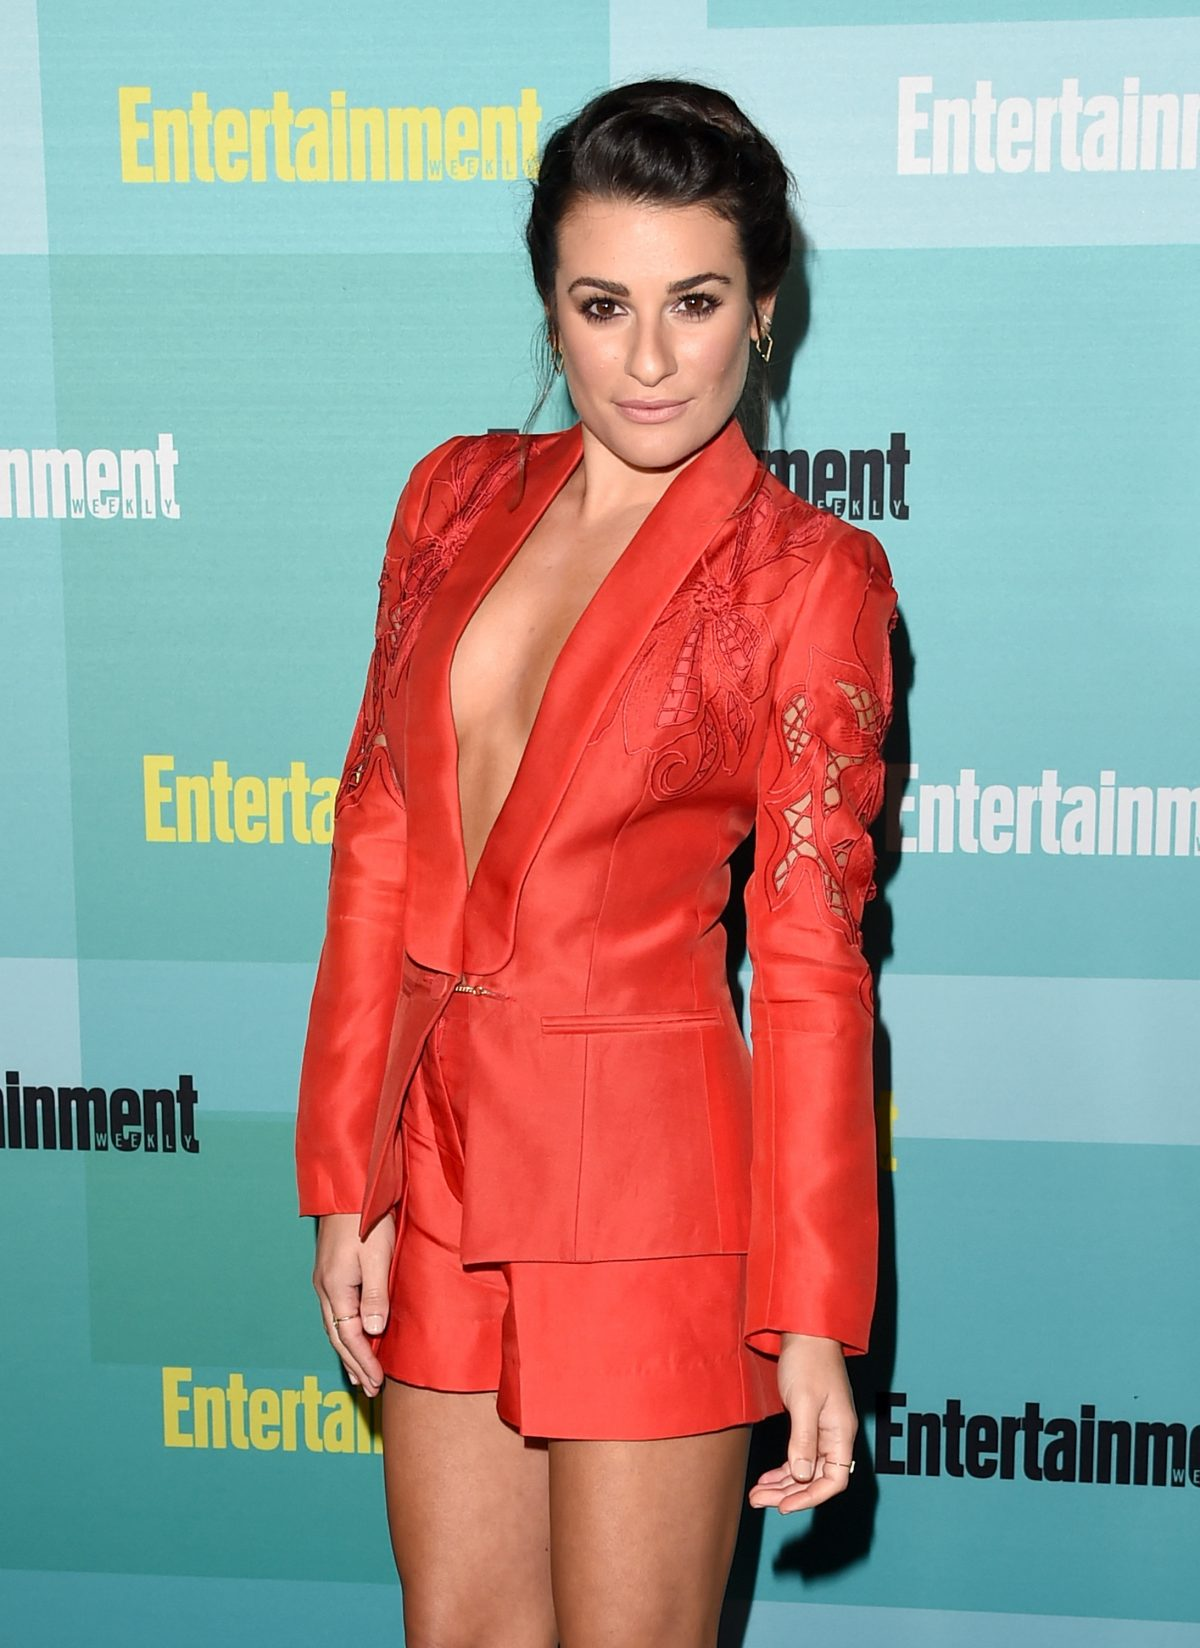 Actress/singer Lea Michele attends Entertainment Weekly's Comic-Con 2015 Party sponsored by HBO, Honda, Bud Light Lime and Bud Light Ritas at FLOAT at The Hard Rock Hotel on July 11, 2015 in San Diego. (Photo by Jason Merritt/Getty Images for Entertainment Weekly)